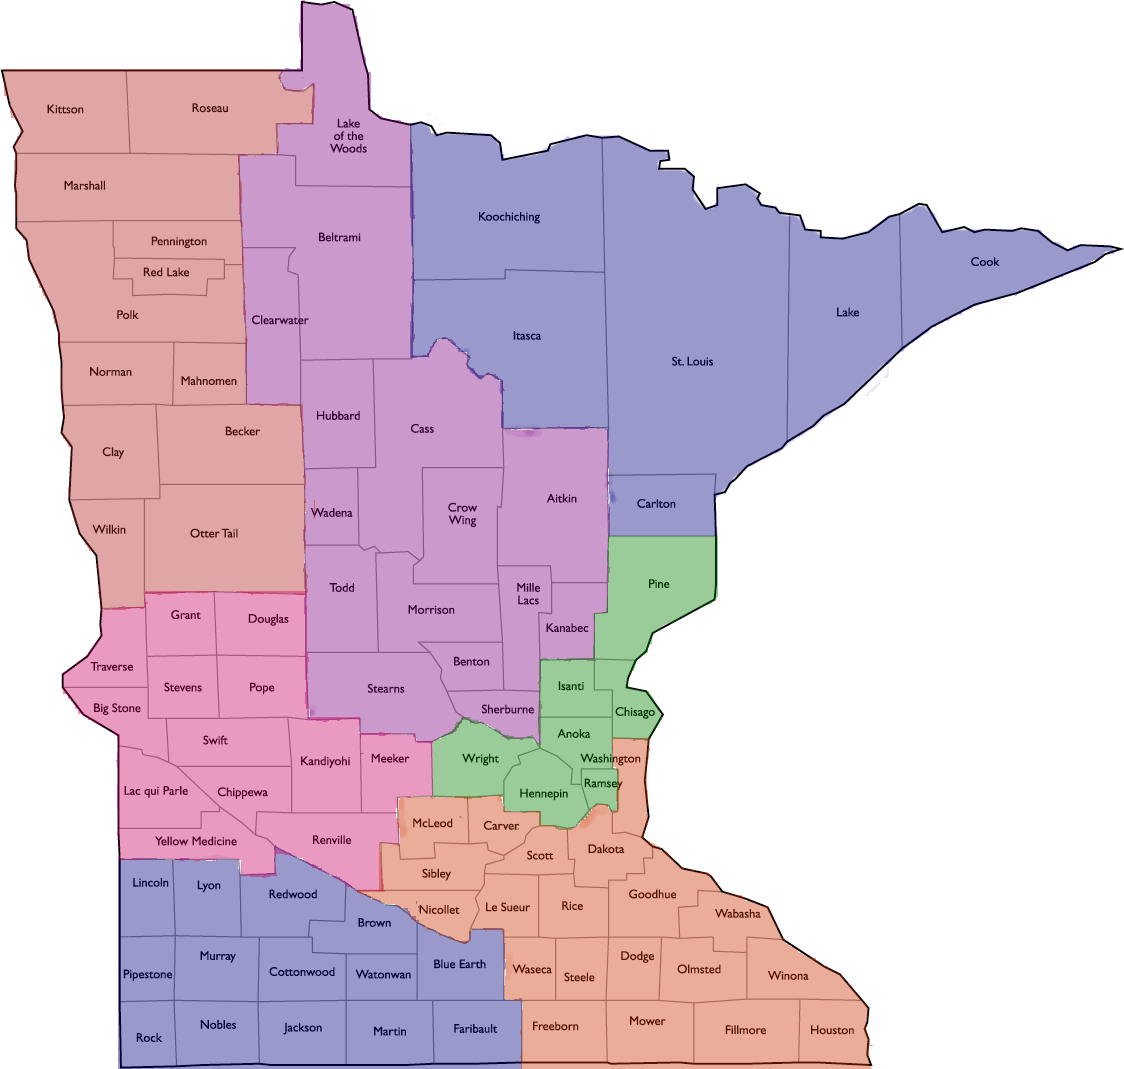 Find A Club - General Federation of Women's Clubs Minnesota Map Of Kerkhoven Mn on map of hutchinson mn, map of lakeville mn, map of long prairie mn, map of jacobson mn, map of forest lake mn, map of lake bronson mn, map of glenville mn, map of graceville mn, map of grand meadow mn, map of minnesota city mn, map of inver grove heights mn, map of starbuck mn, map of little falls mn, map of aitkin mn, map of cold spring mn, map of jasper mn, map of holloway mn, map of sauk centre mn, map of littlefork mn, map of isabella mn,